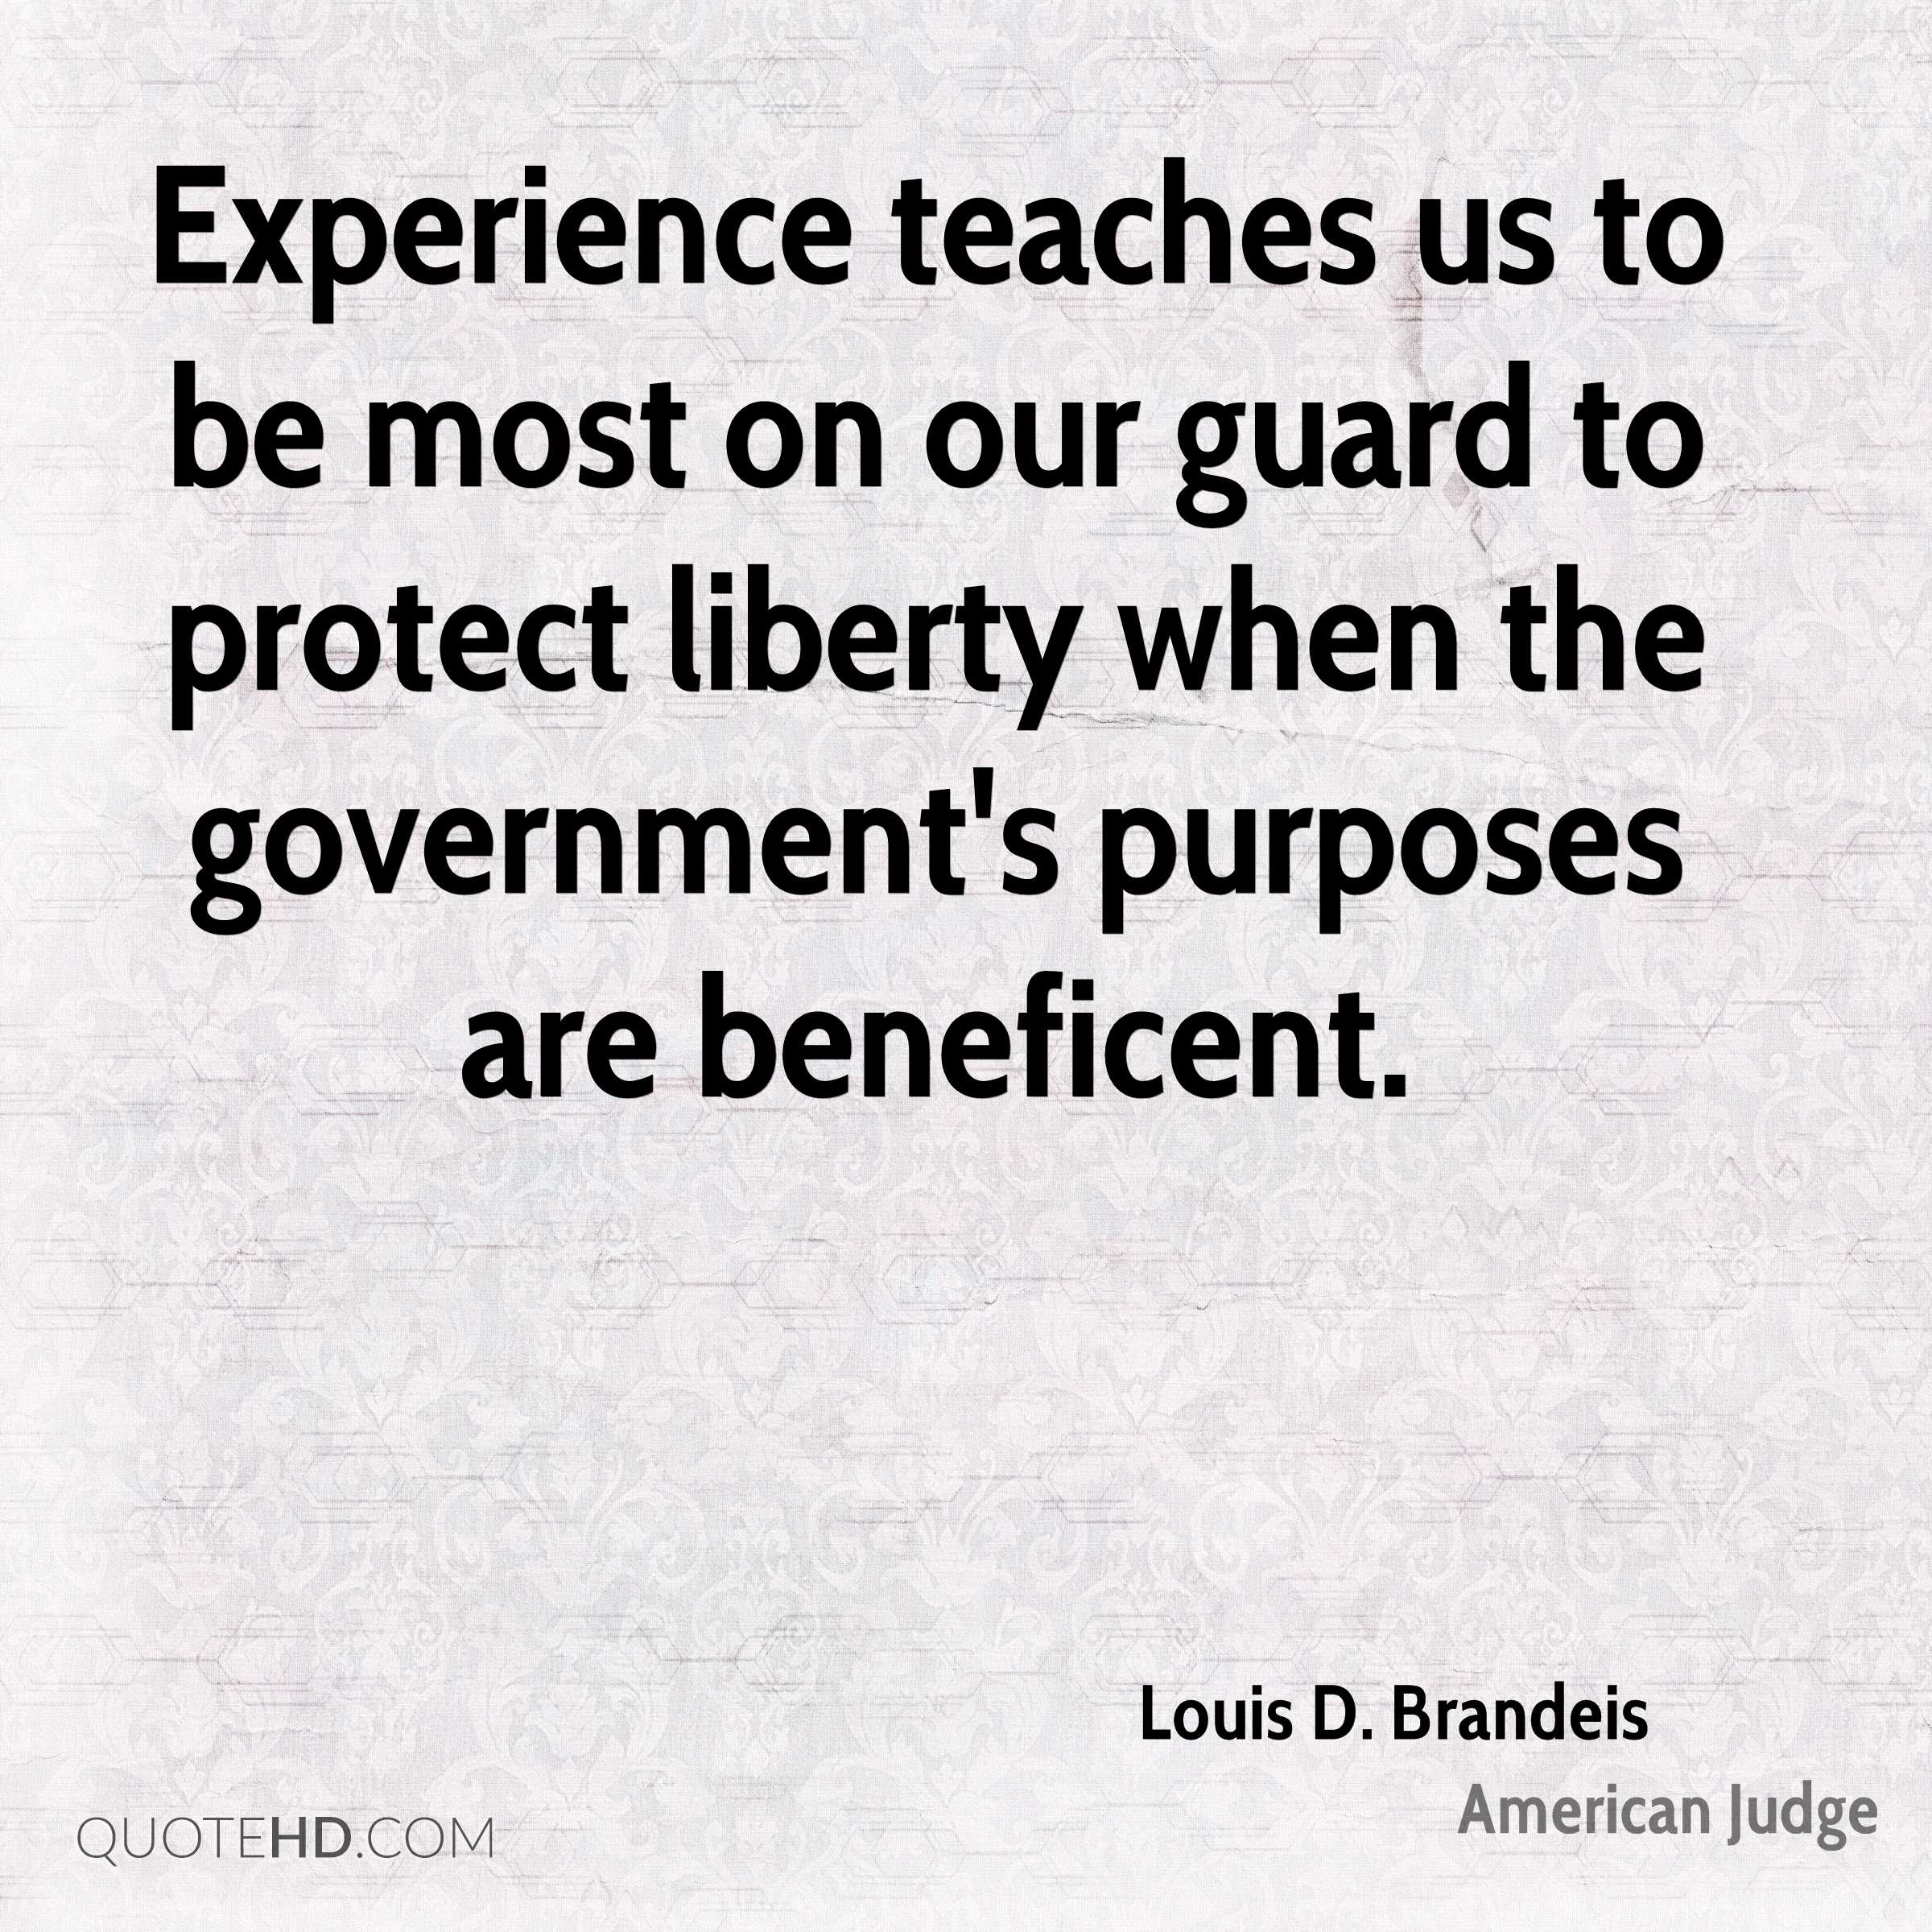 Experience teaches us to be most on our guard to protect liberty when the government's purposes are beneficent.